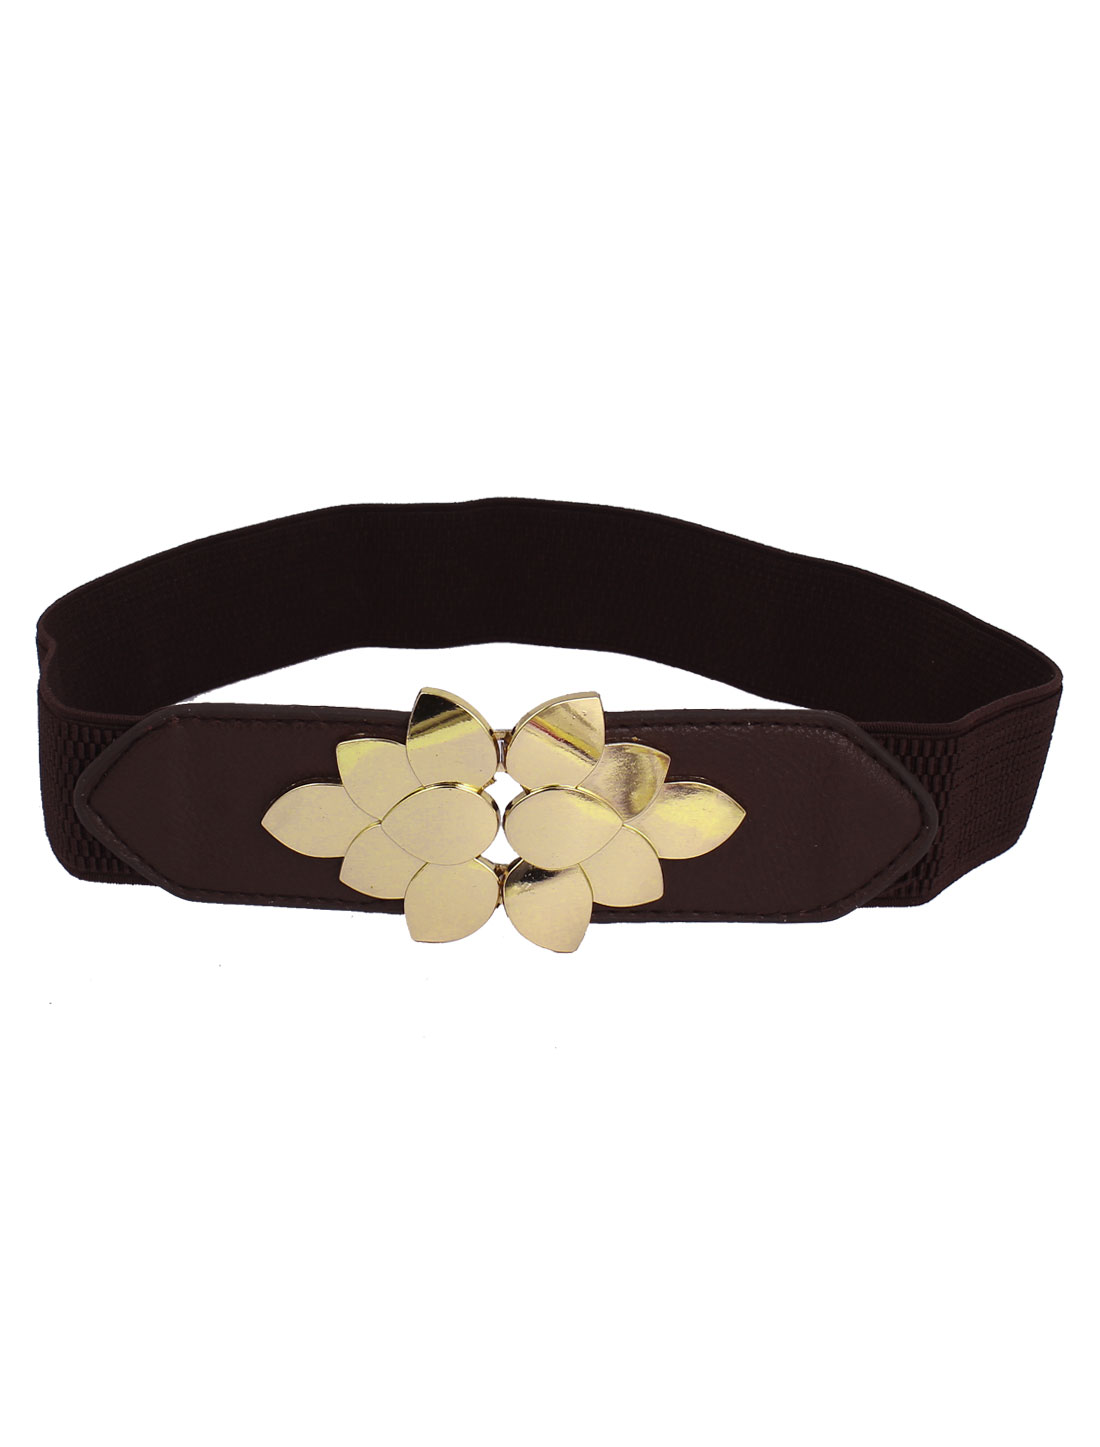 Ladies Dark Brown Gold Tone Flower Design Buckle Elastic Cinch Waist Belt